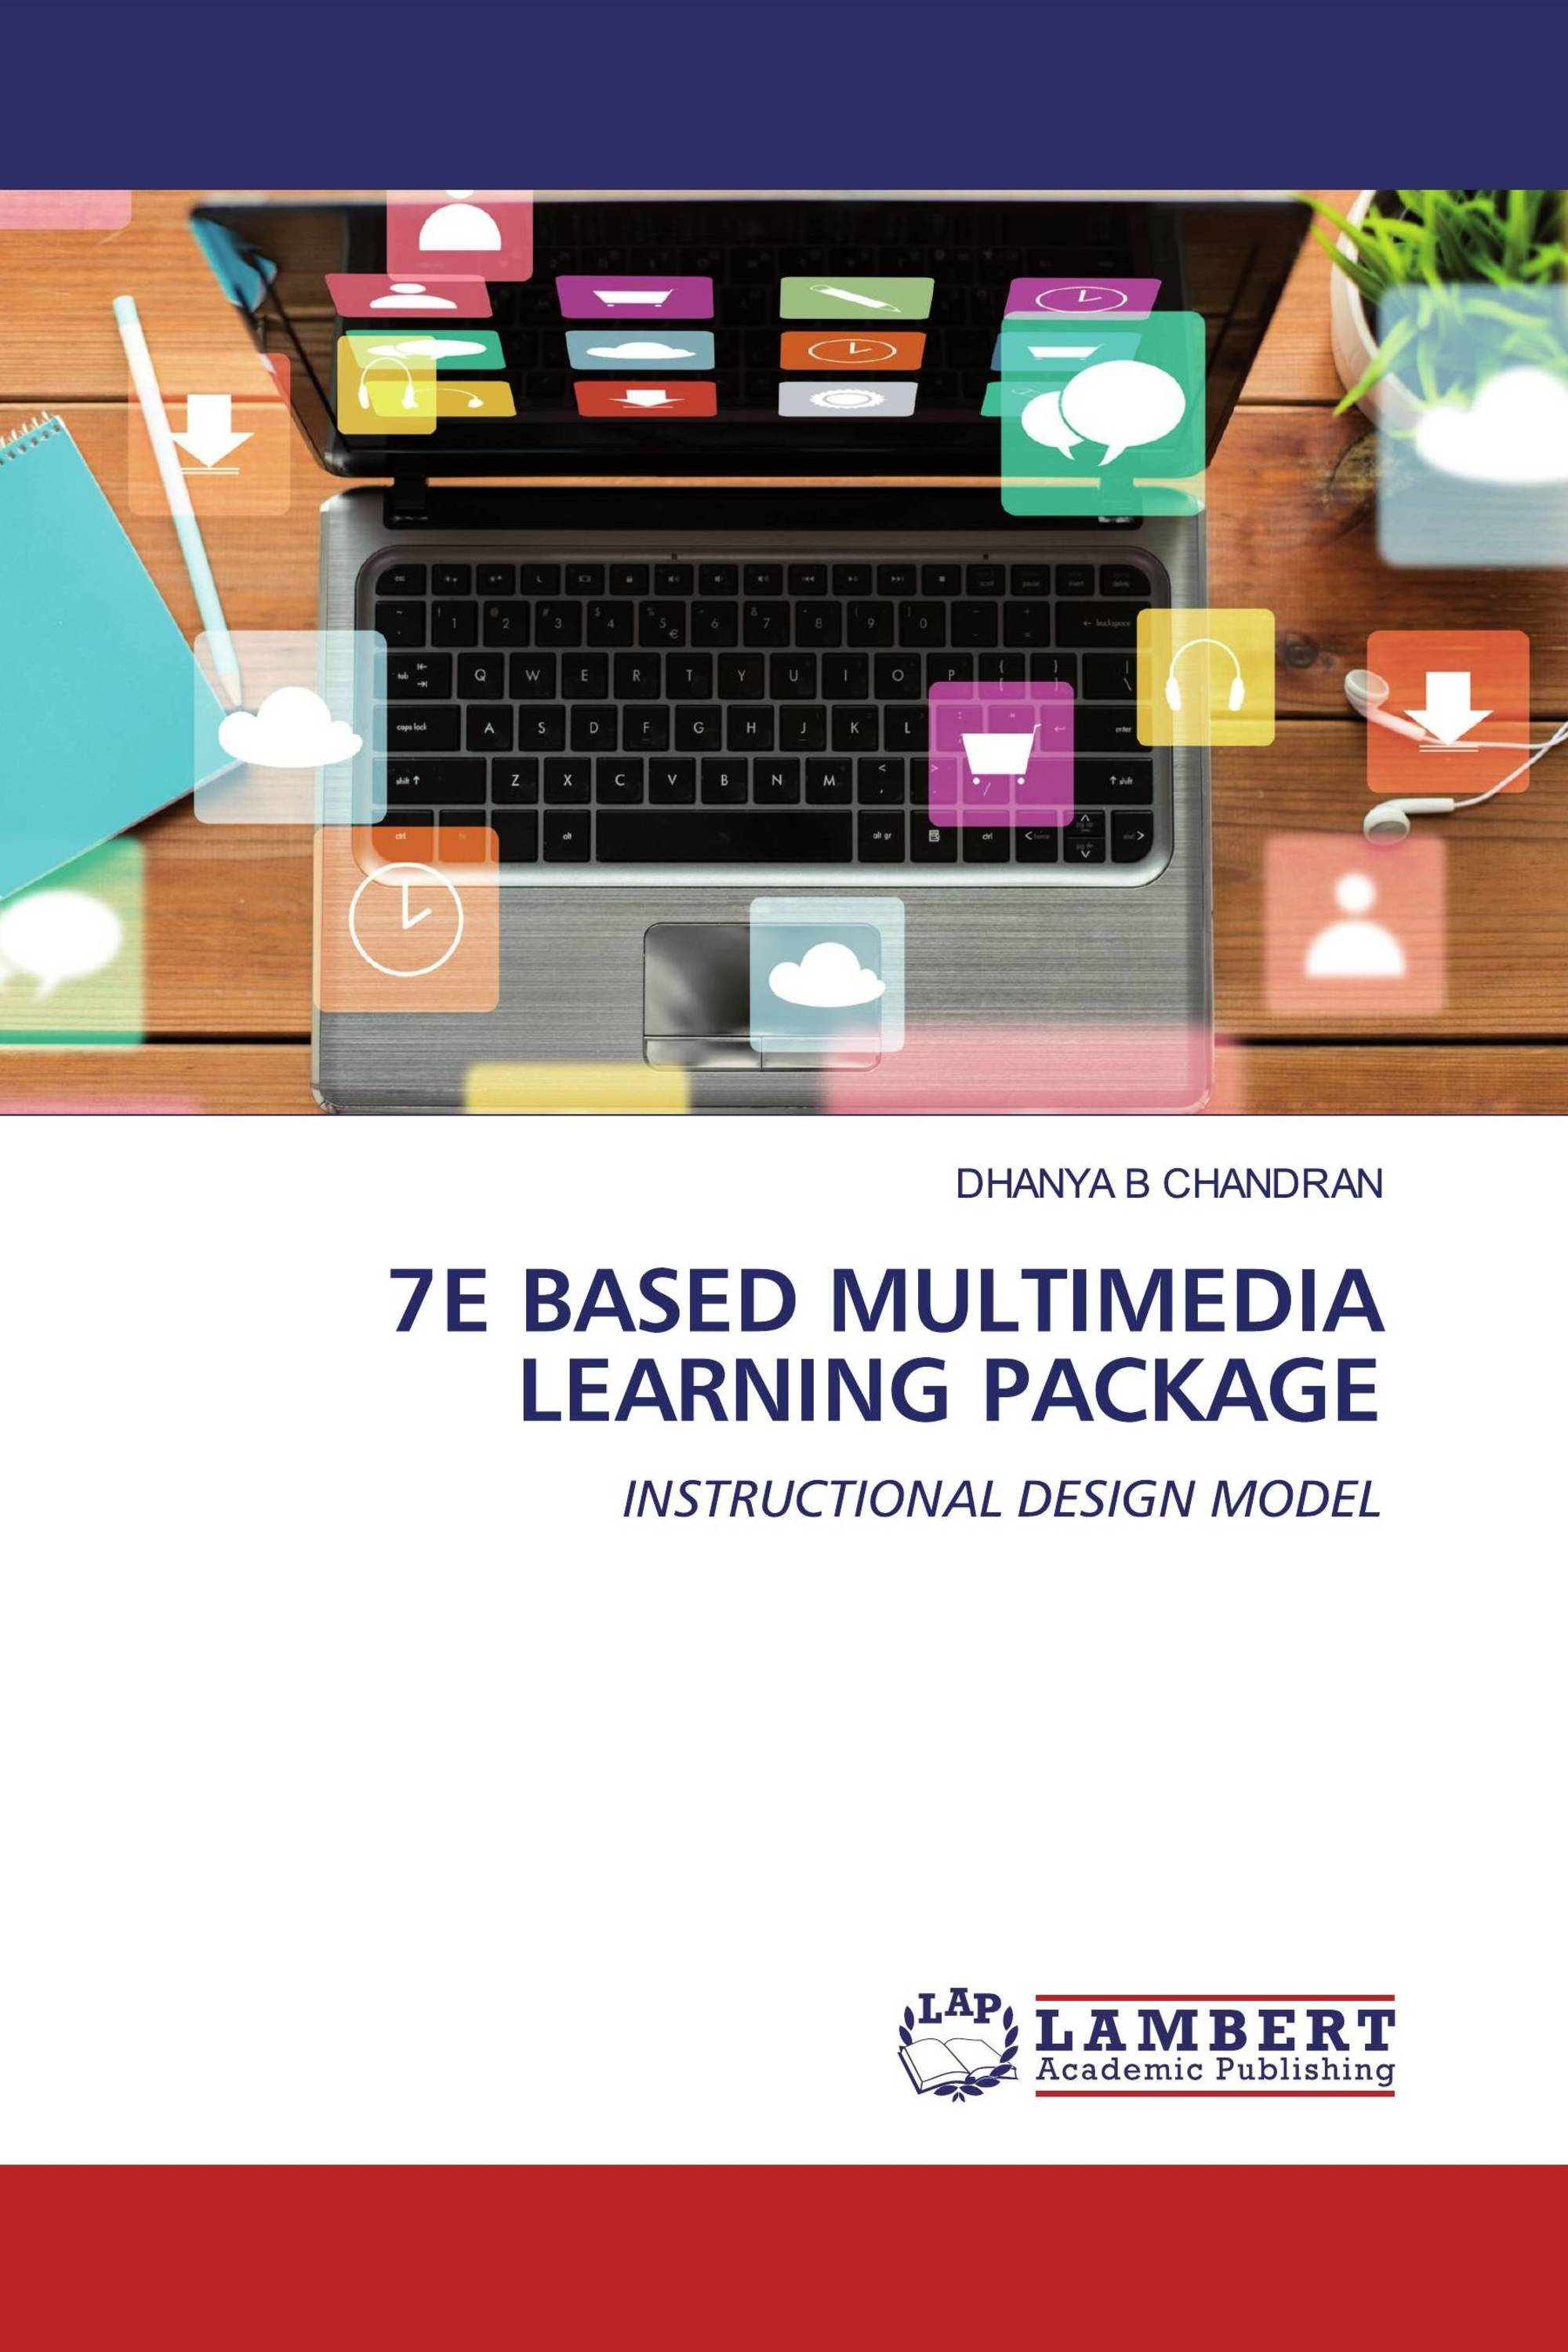 7E BASED MULTIMEDIA LEARNING PACKAGE